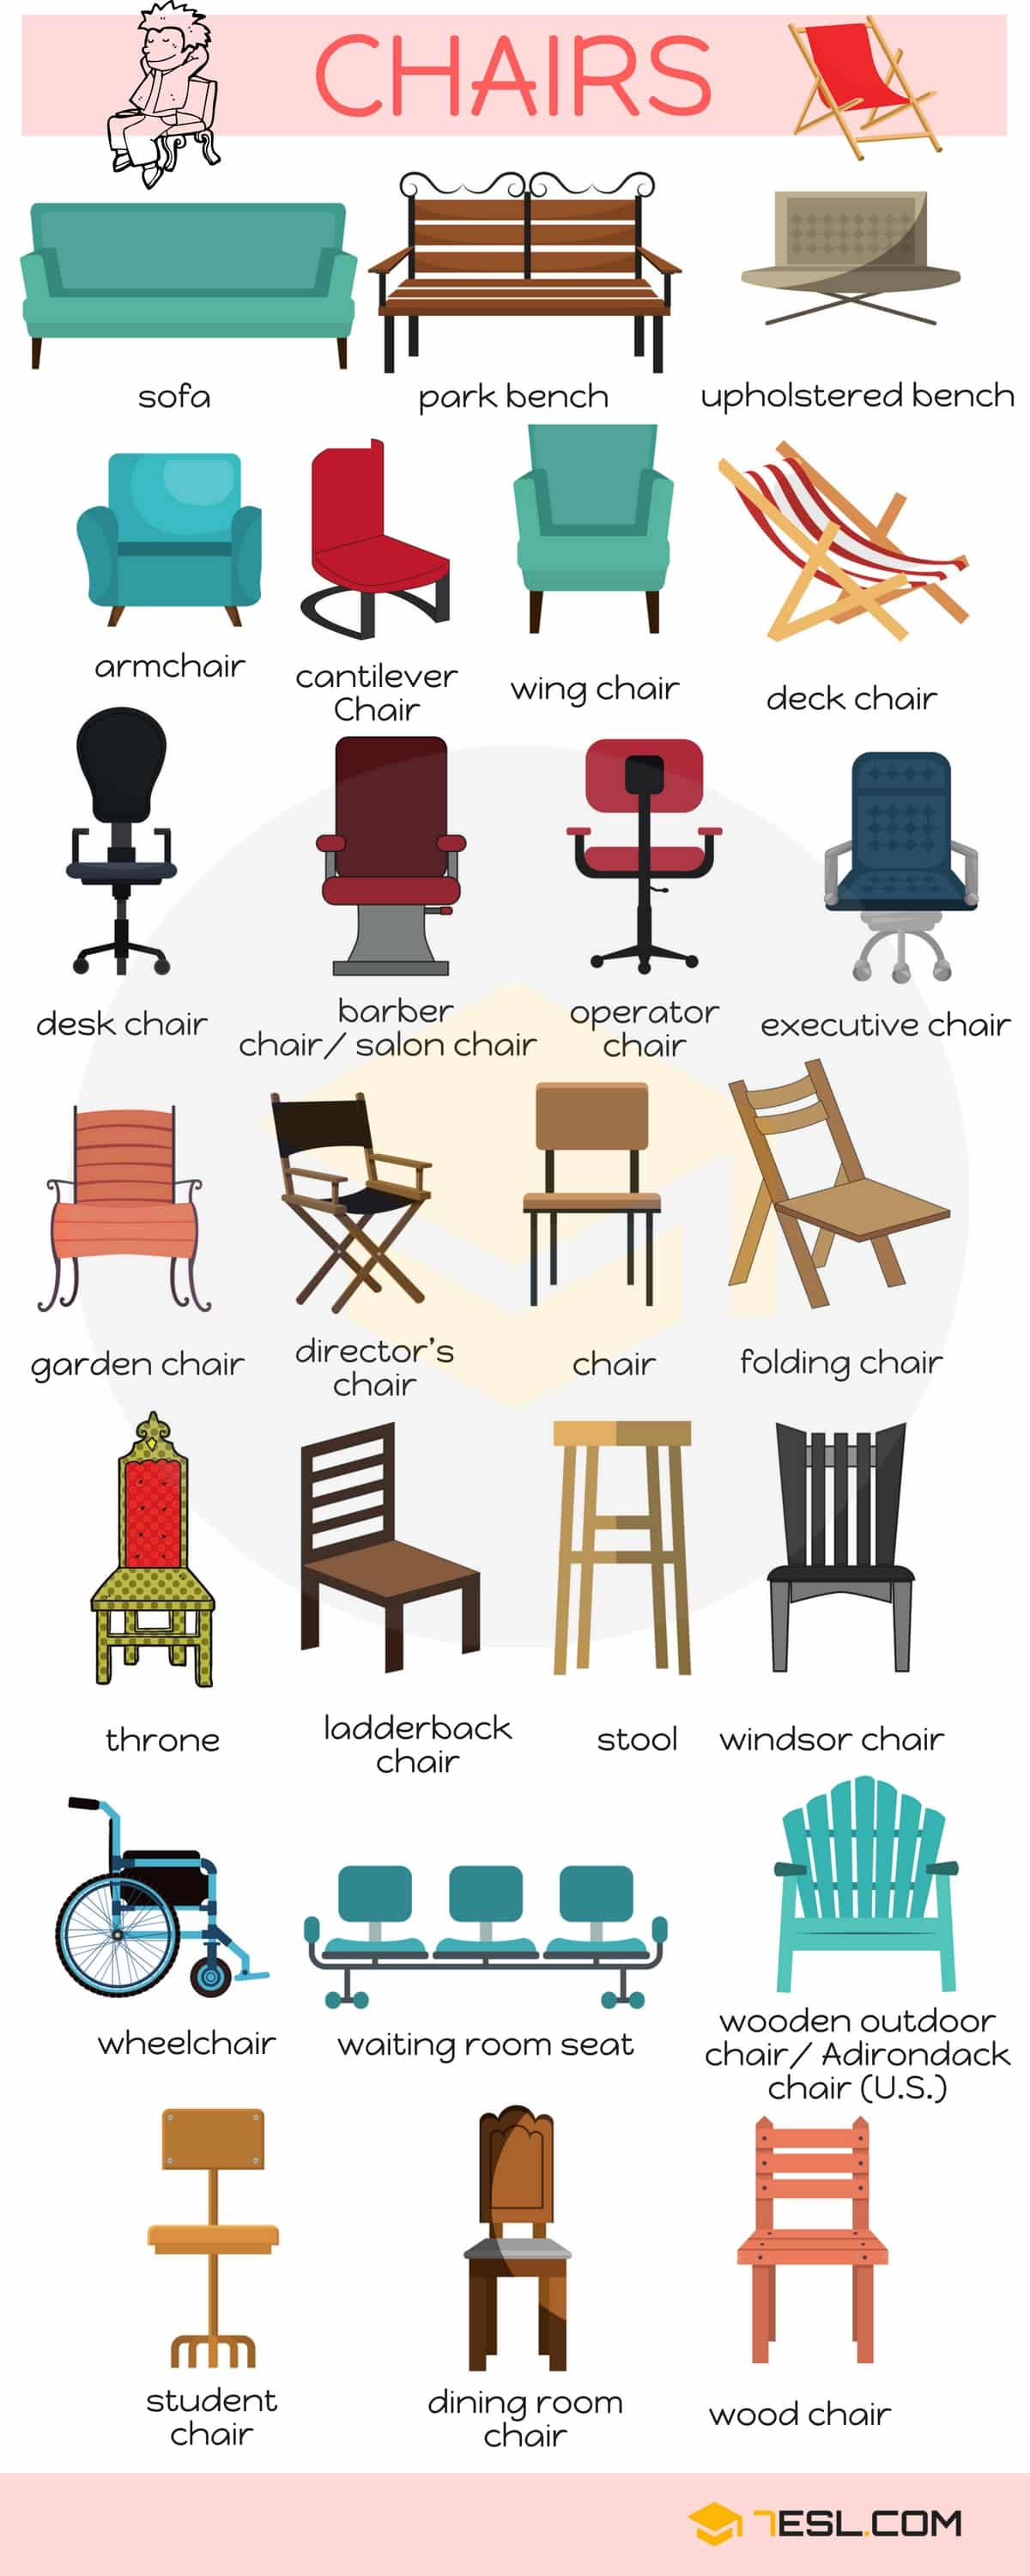 Chairs Vocabulary in English | Image